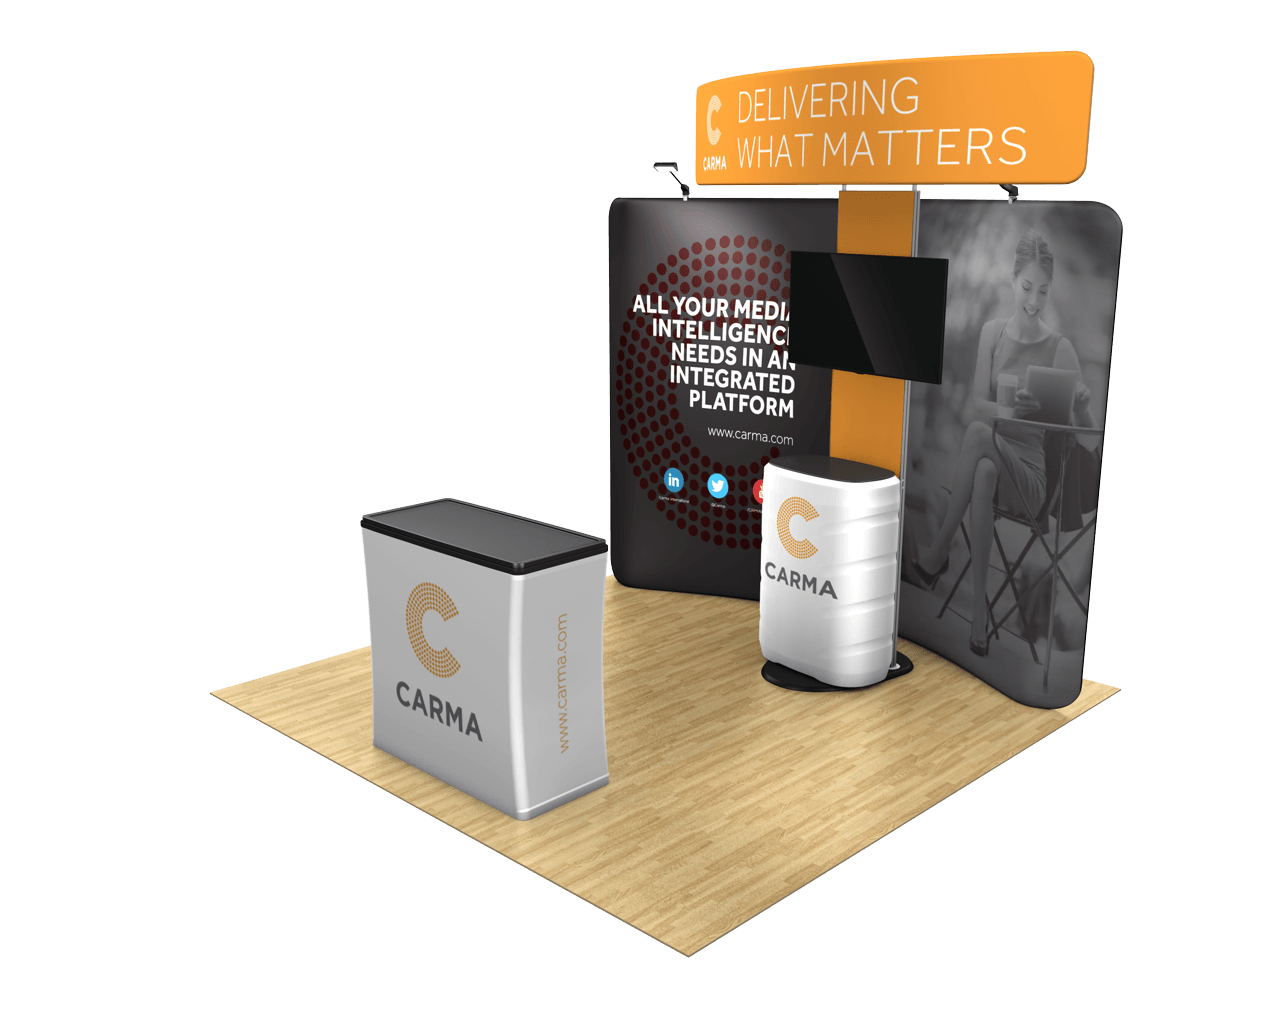 Waveline Curved 10ft Trade Show Display Kit with Standroid